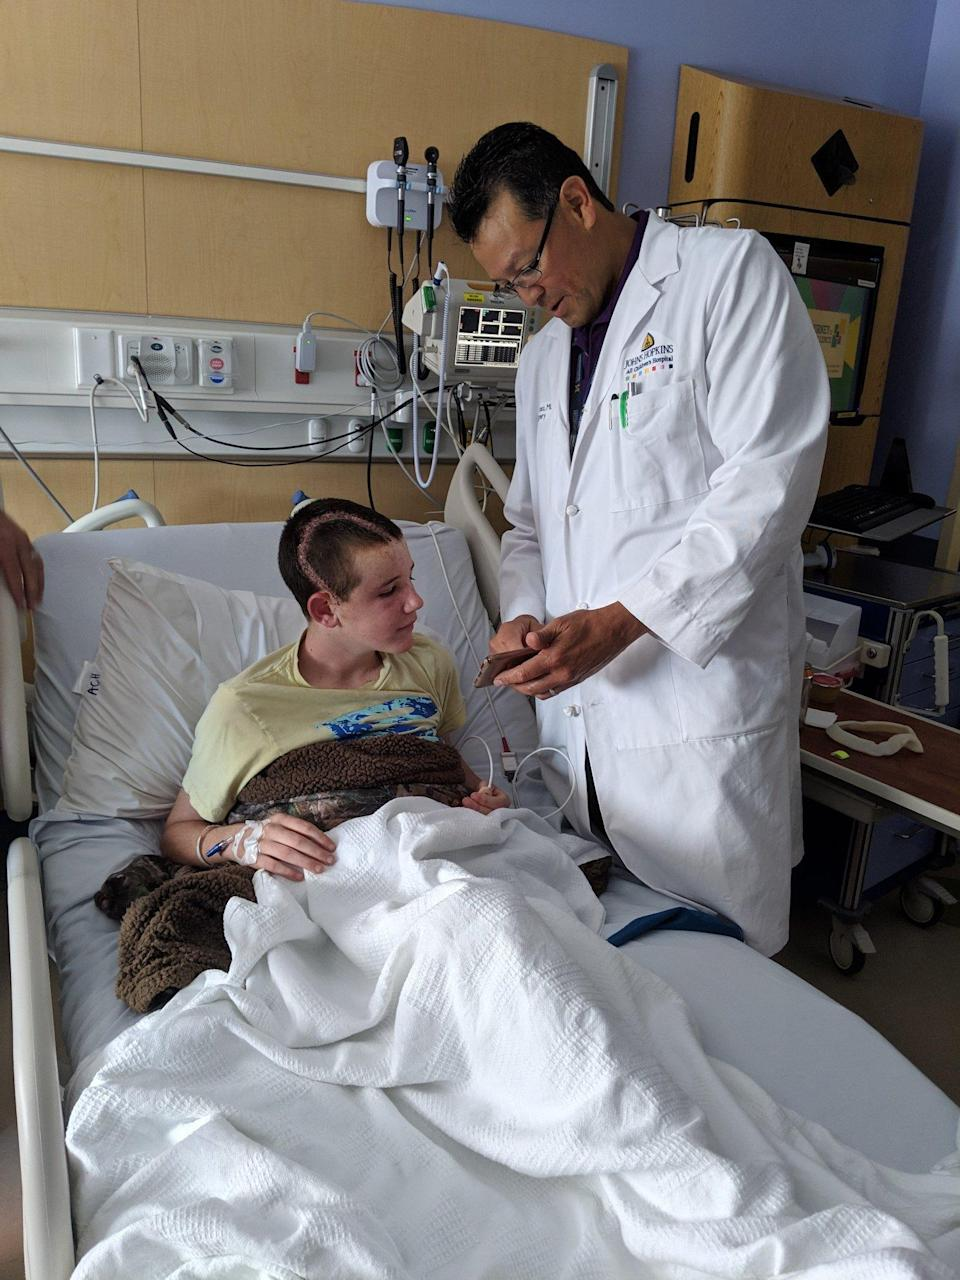 Florida Teen Survives After Boat Anchor Impales His Head: 'That's One in a Million'